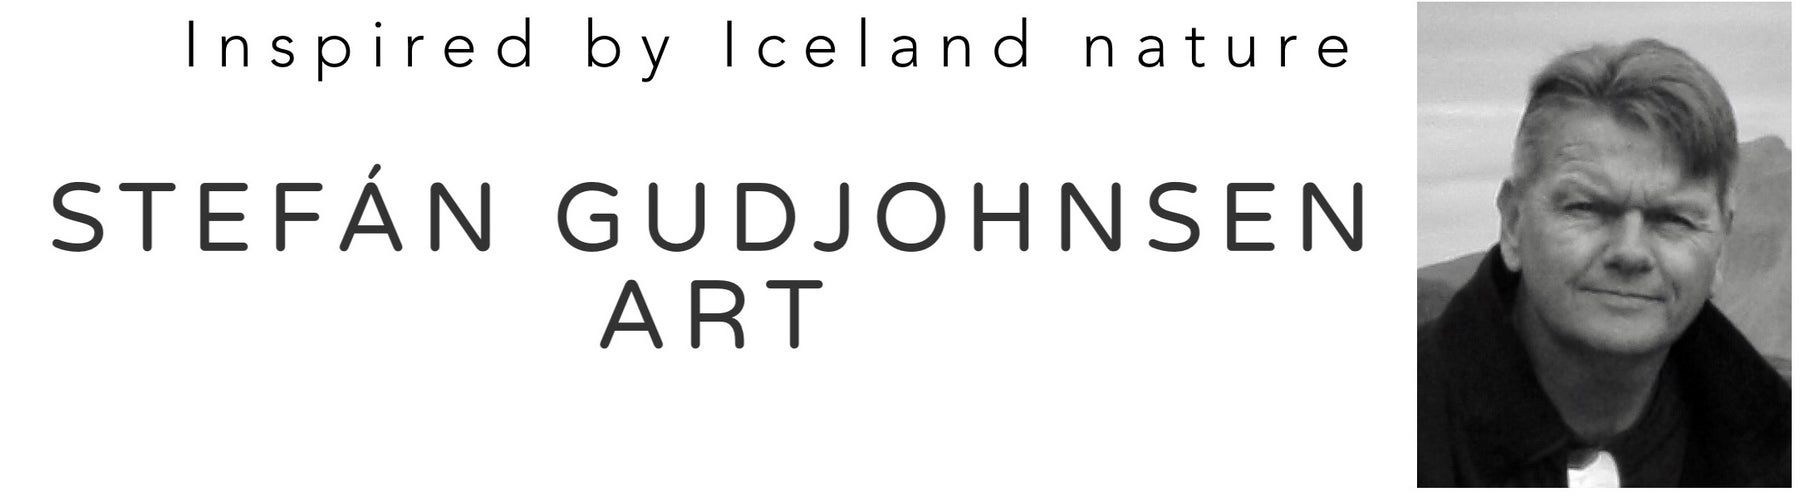 Stefán Gudjohnsen art - inspired by Iceland nature